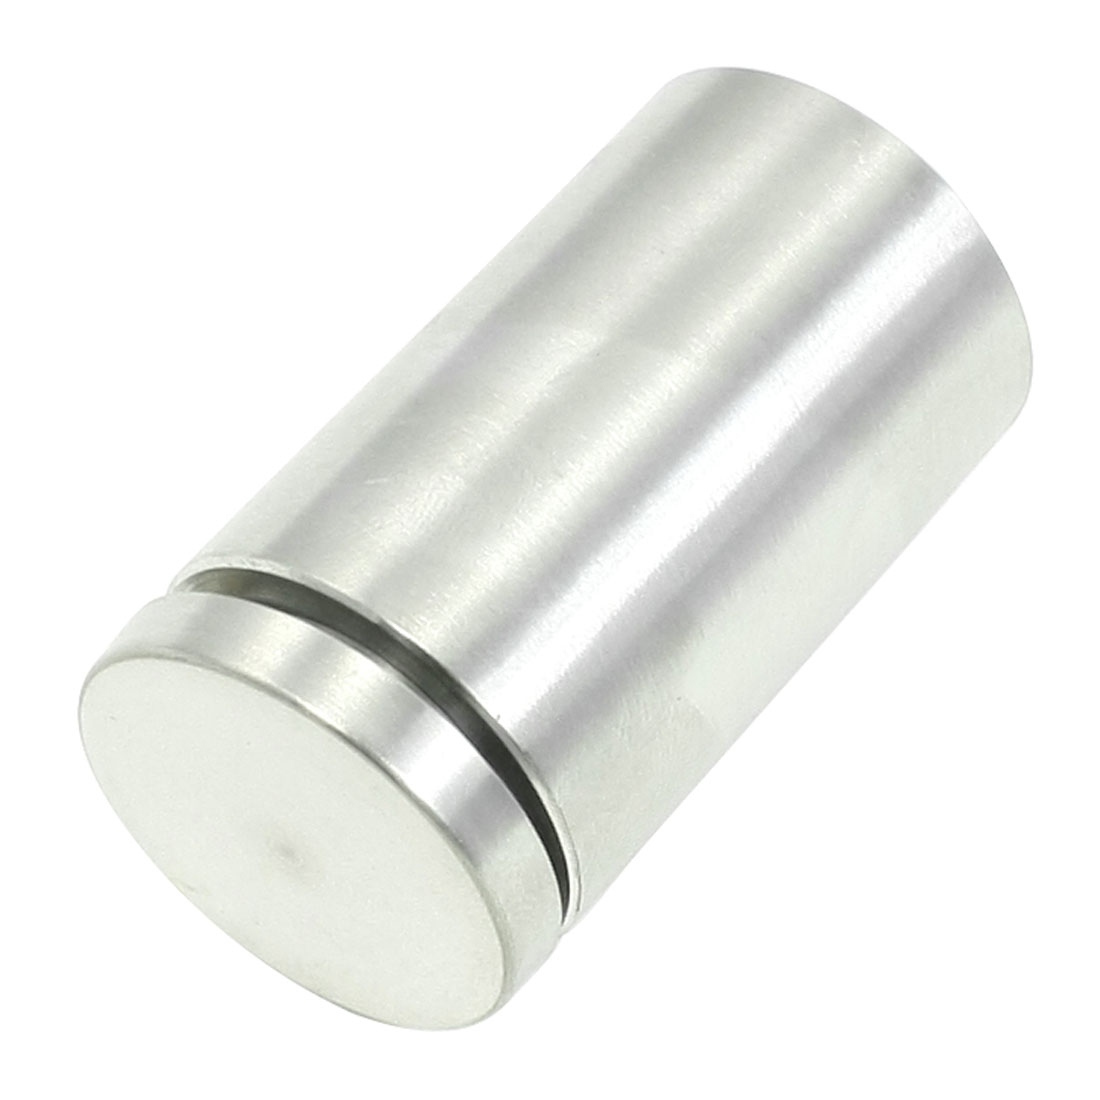 Stainless Steel Advertising Nail Glass Wall Connector Standoff 30mmx50mm